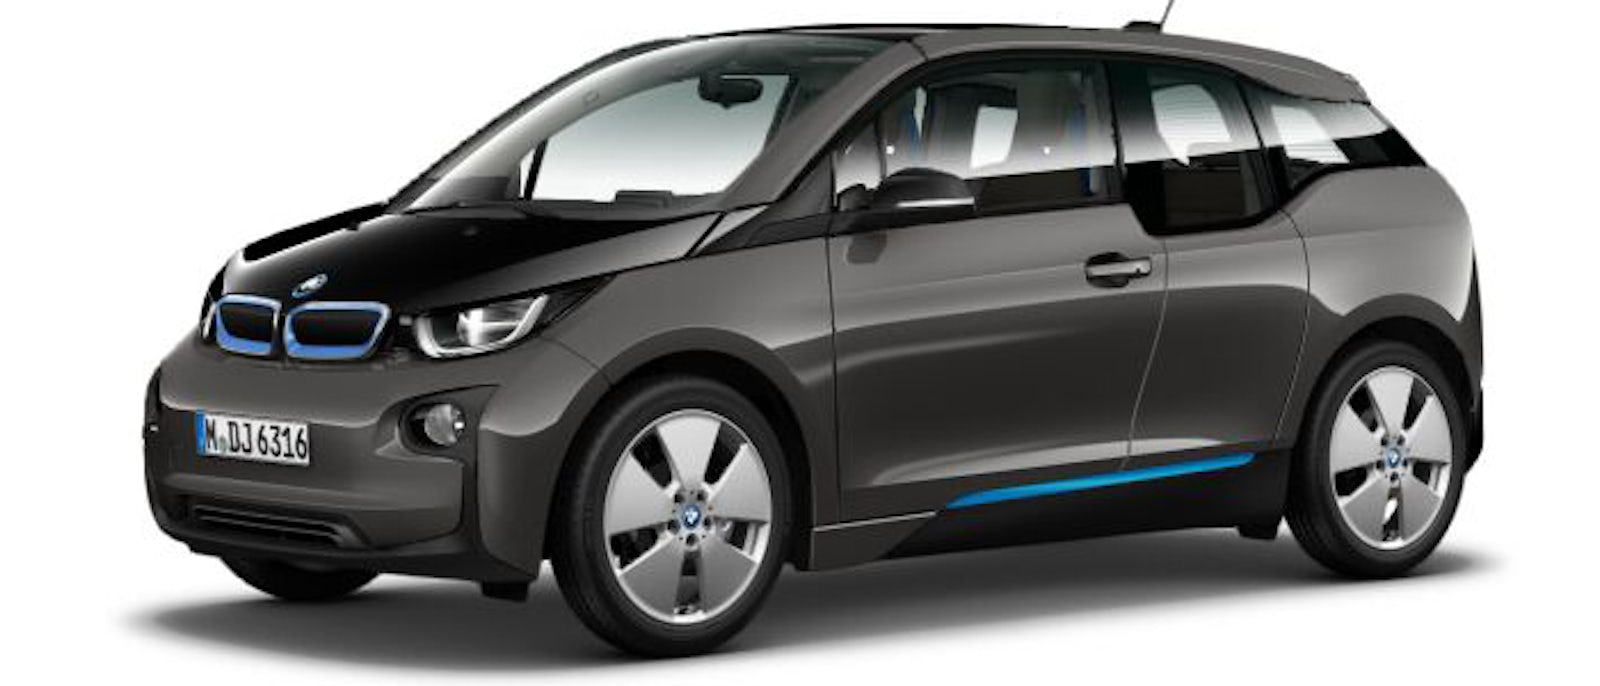 Bmw I3 Electric Car Colours Guide And Prices Carwow